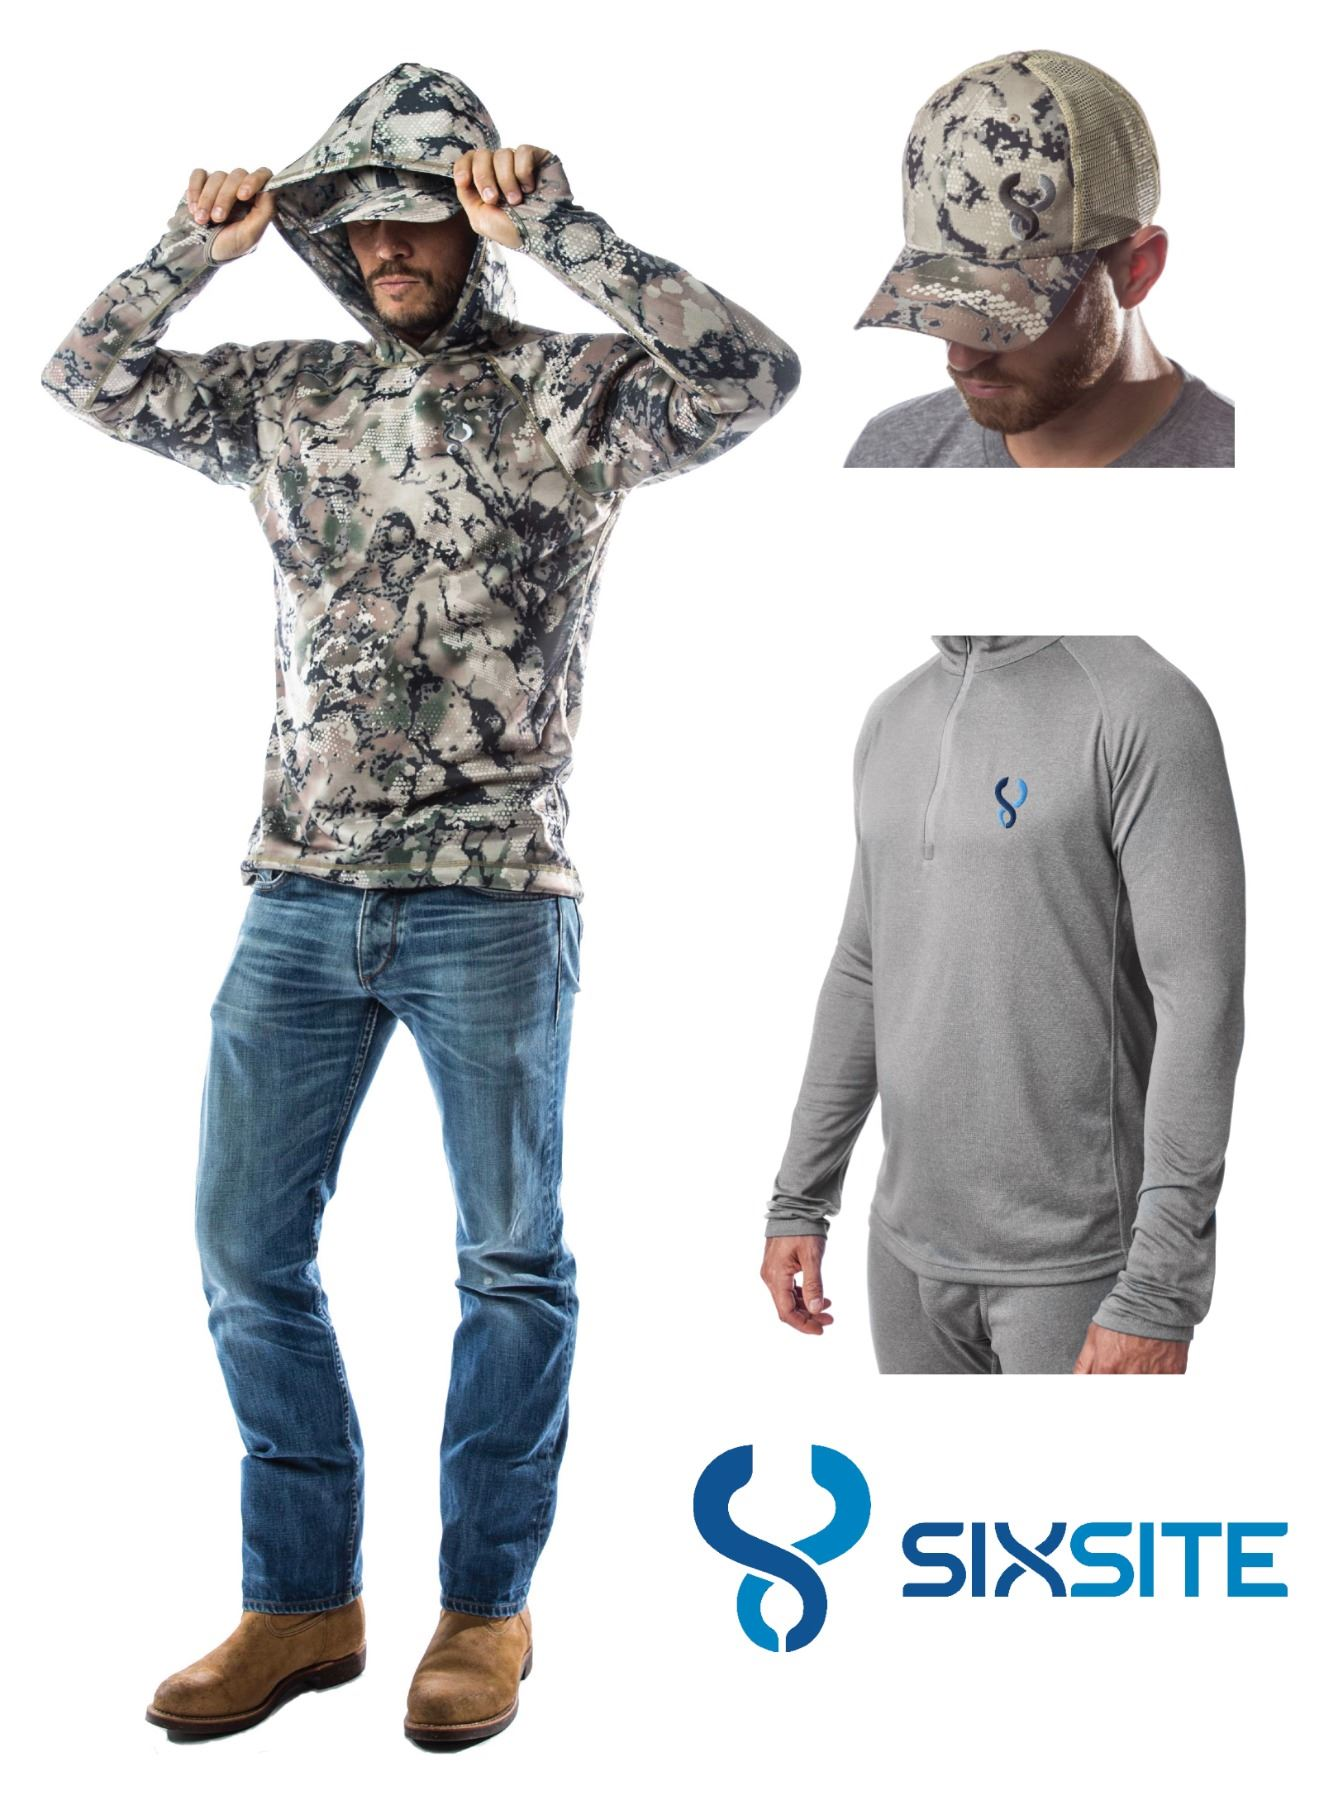 SIXSITE HEAD TO TOE CLOTHING PACKAGE (100% FULLY DONATED) SIXSITE